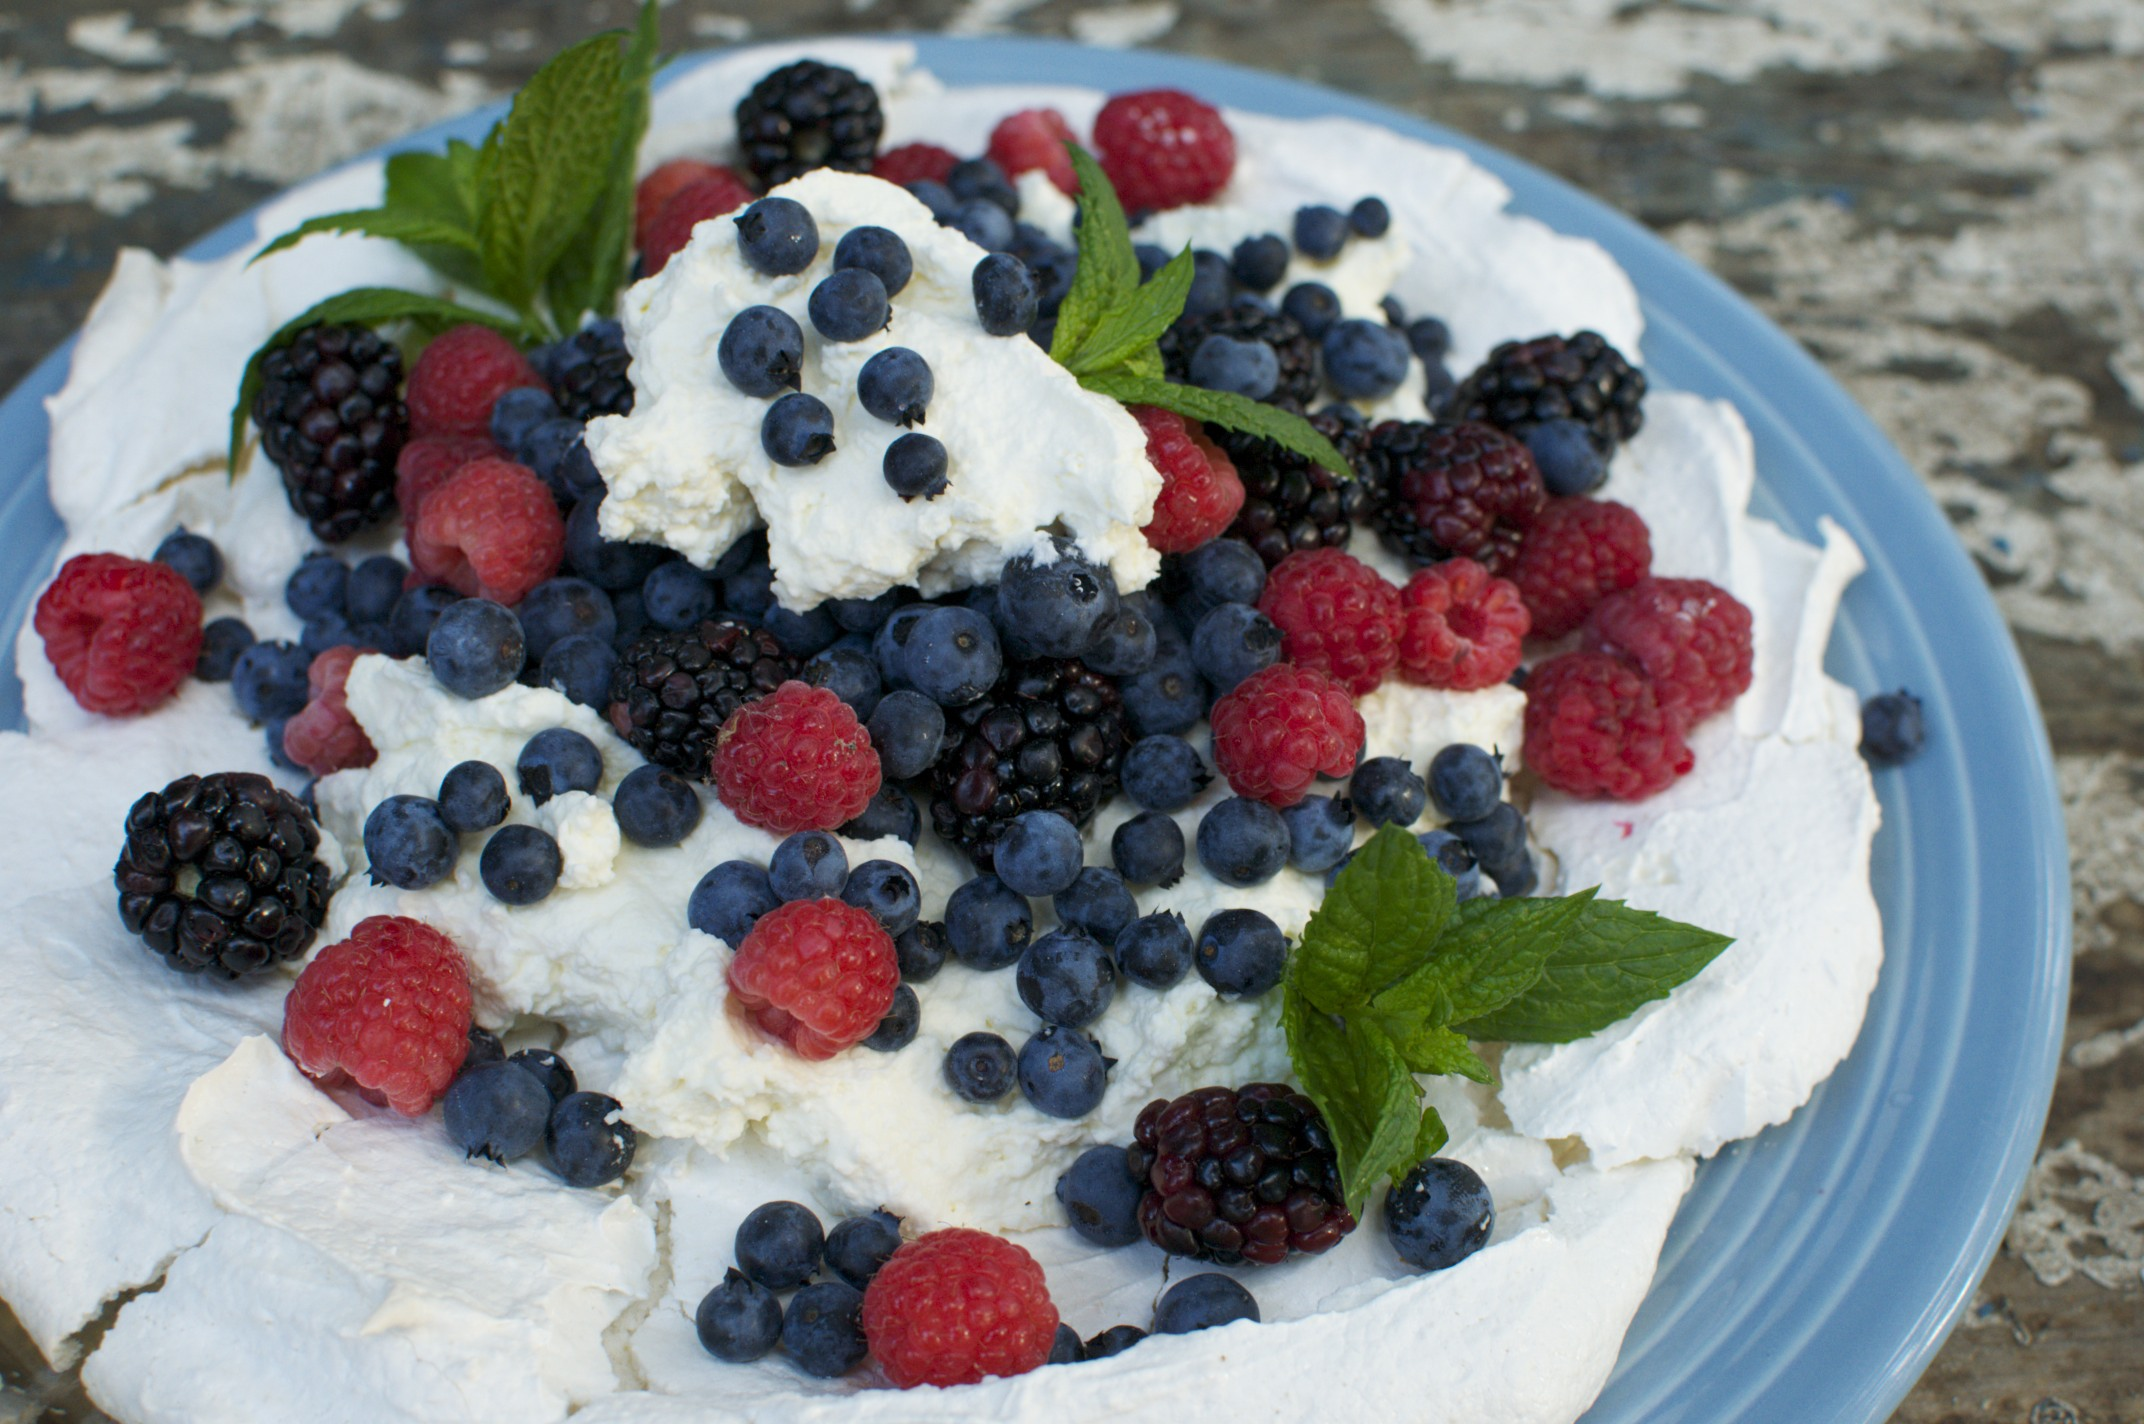 Catherine and Penny's Pavlova Meringues